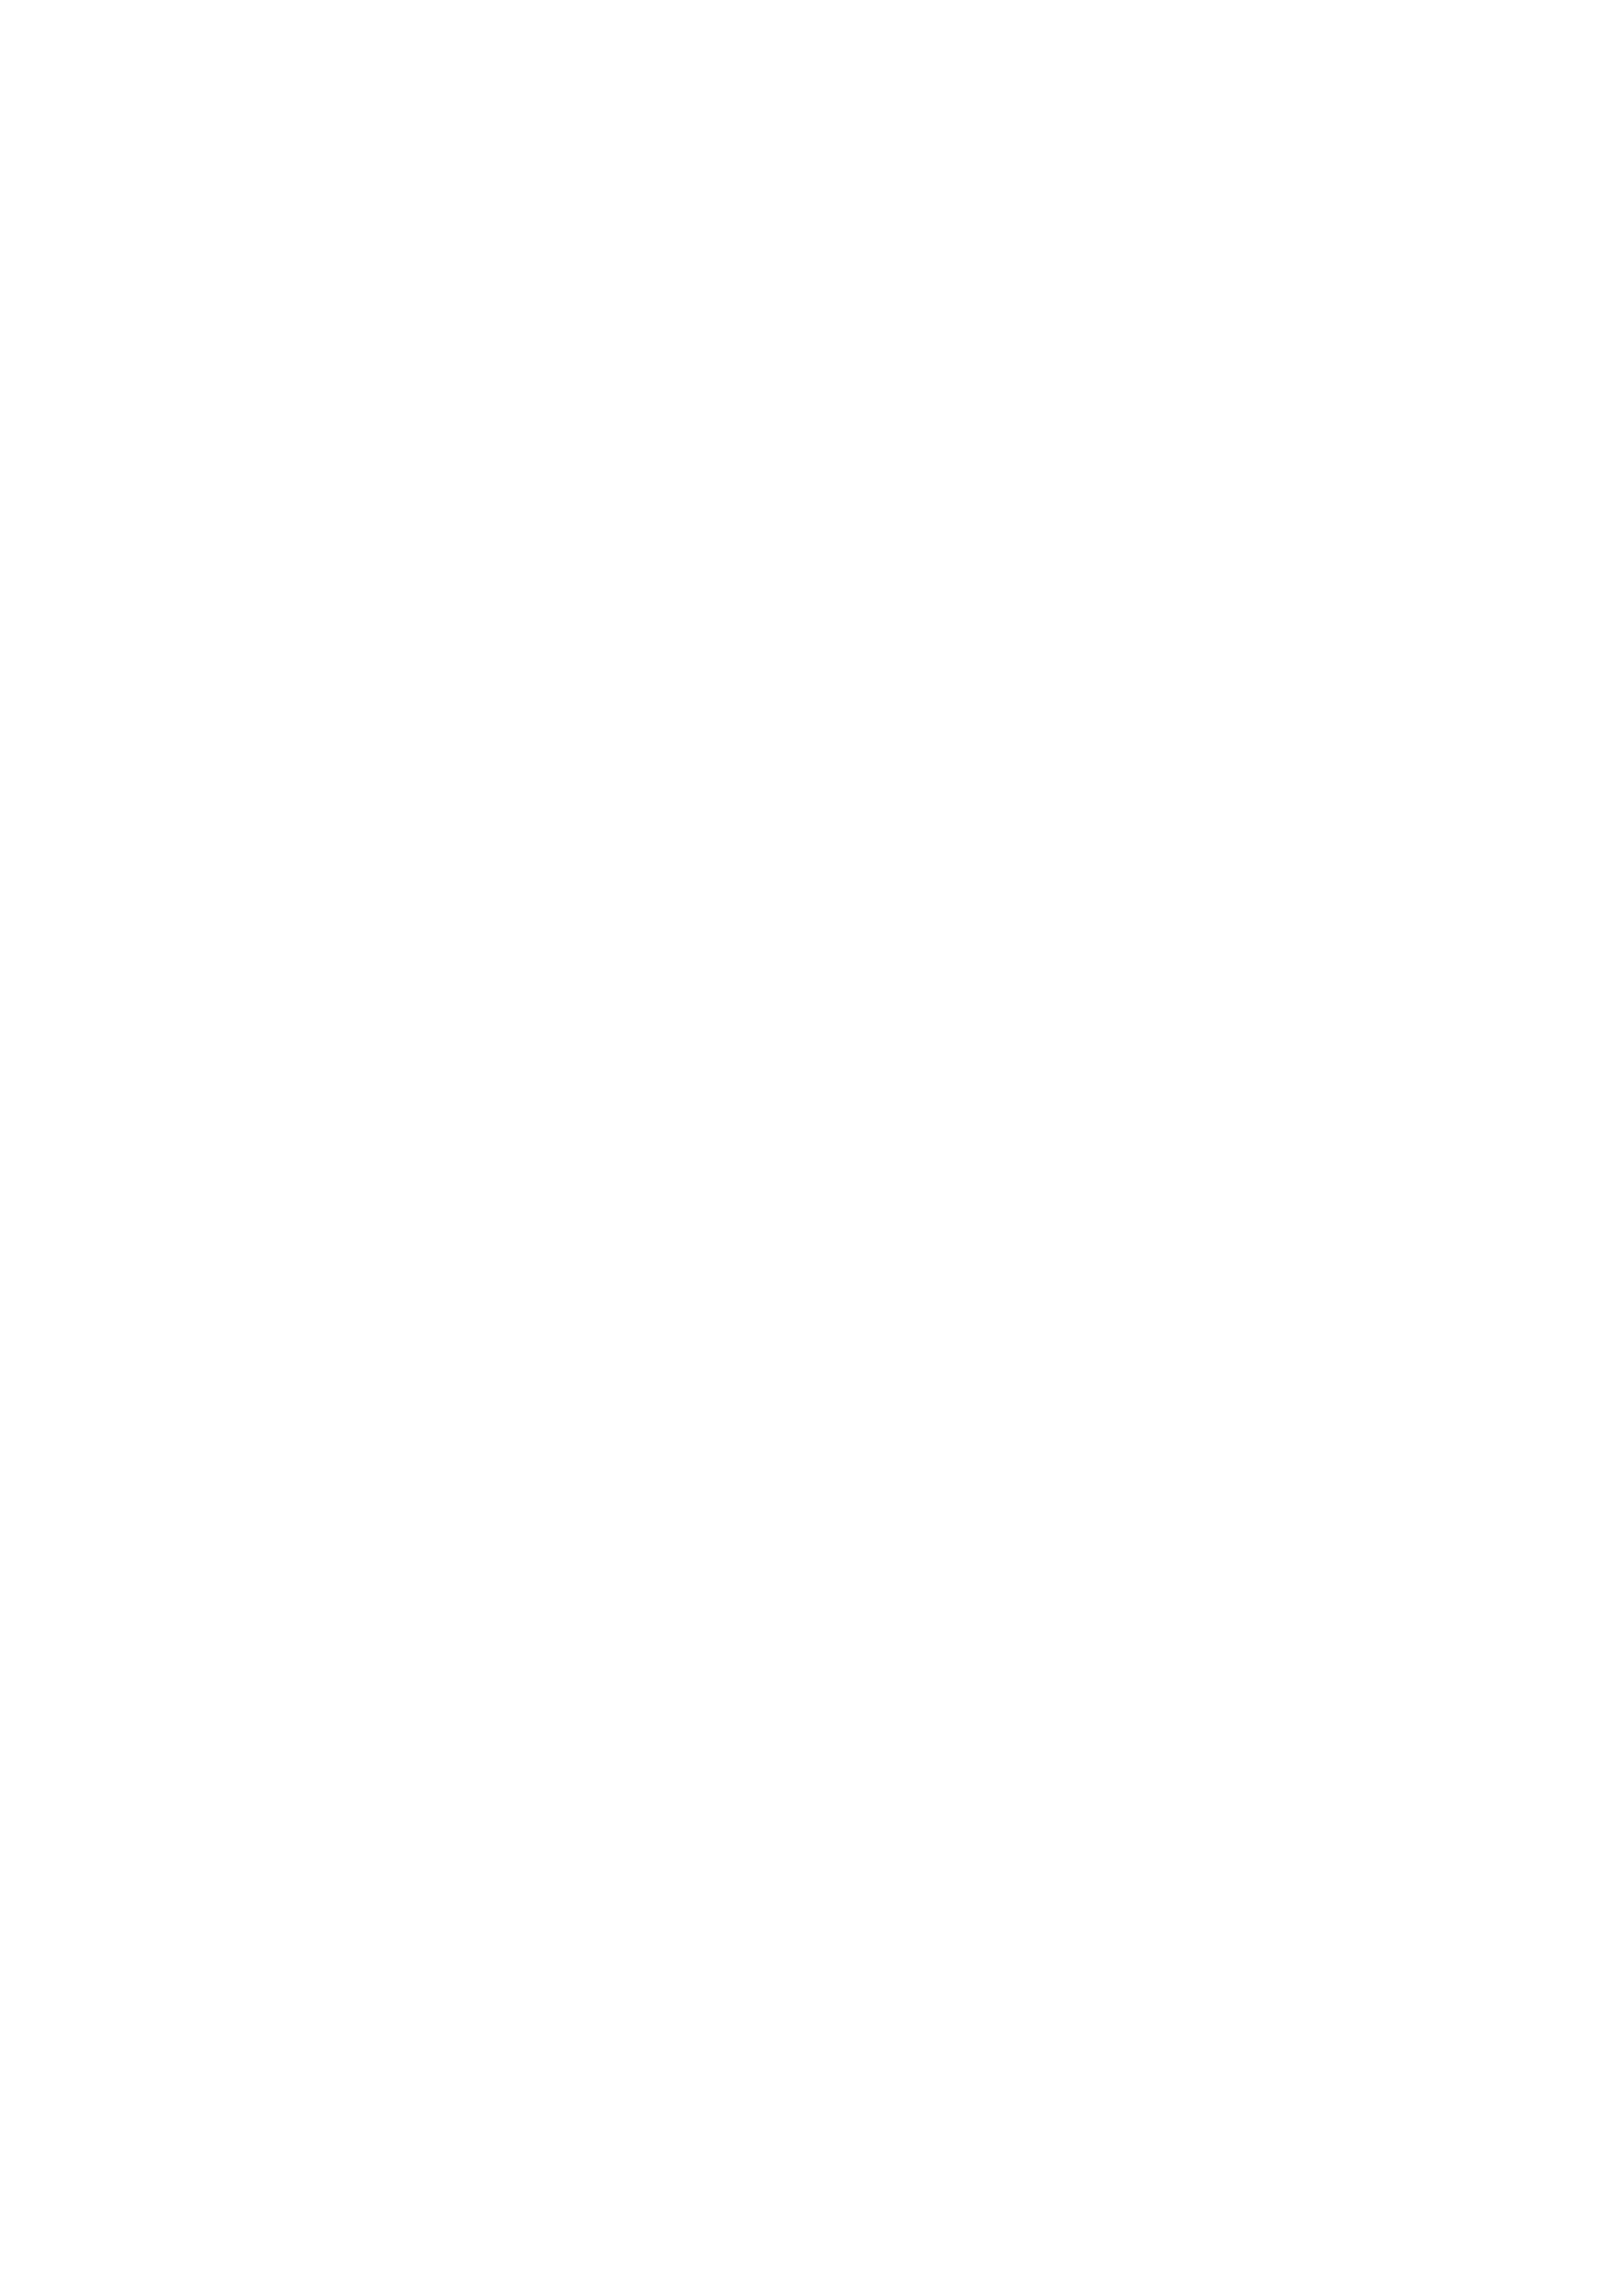 wind and gold-03.png